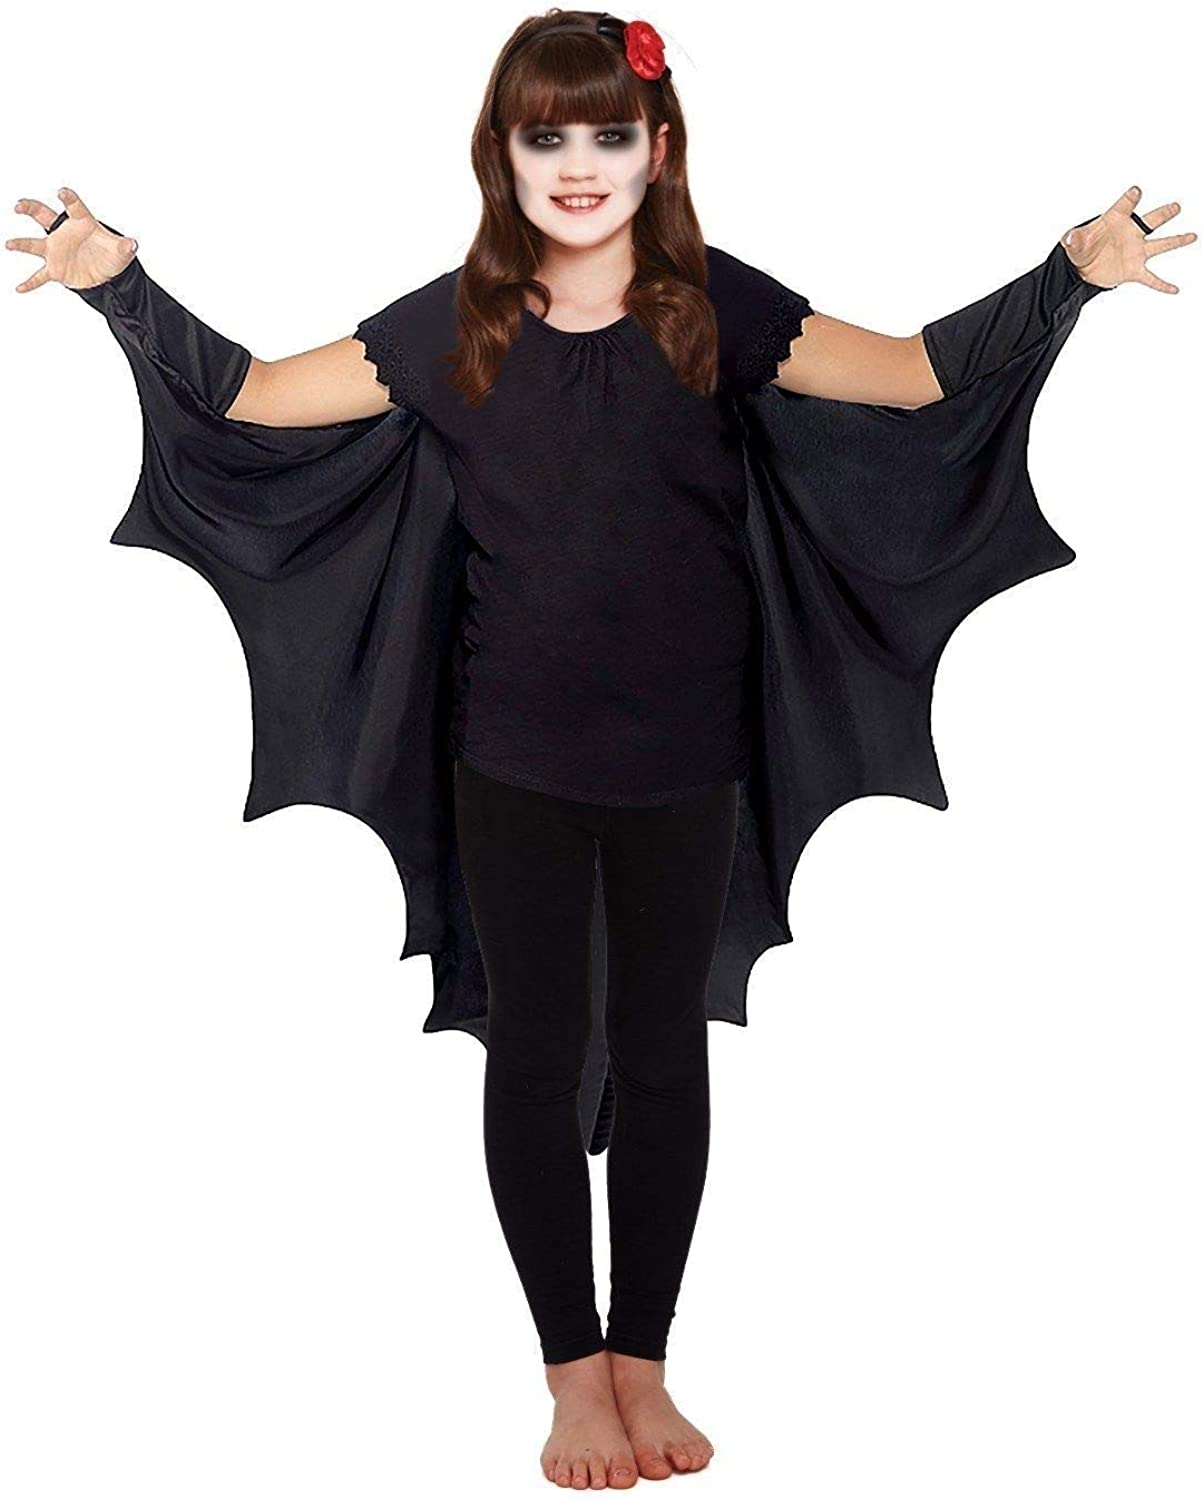 Child/'s Black Bat Fancy Dress Costume Great For Book Week